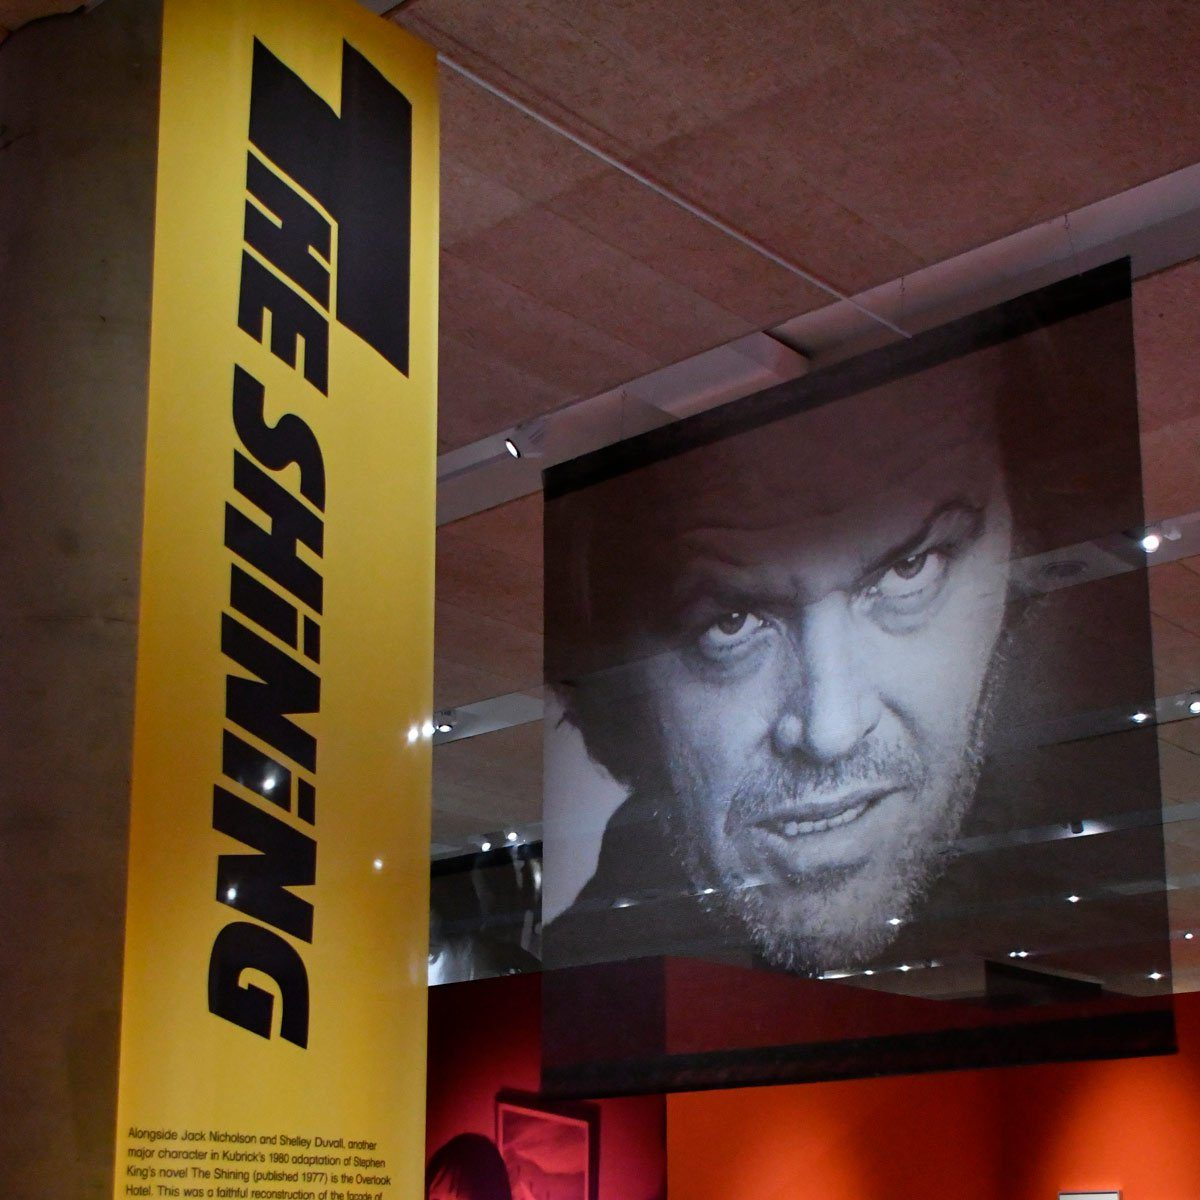 Jack Nicholson from The Shinning Exhibition